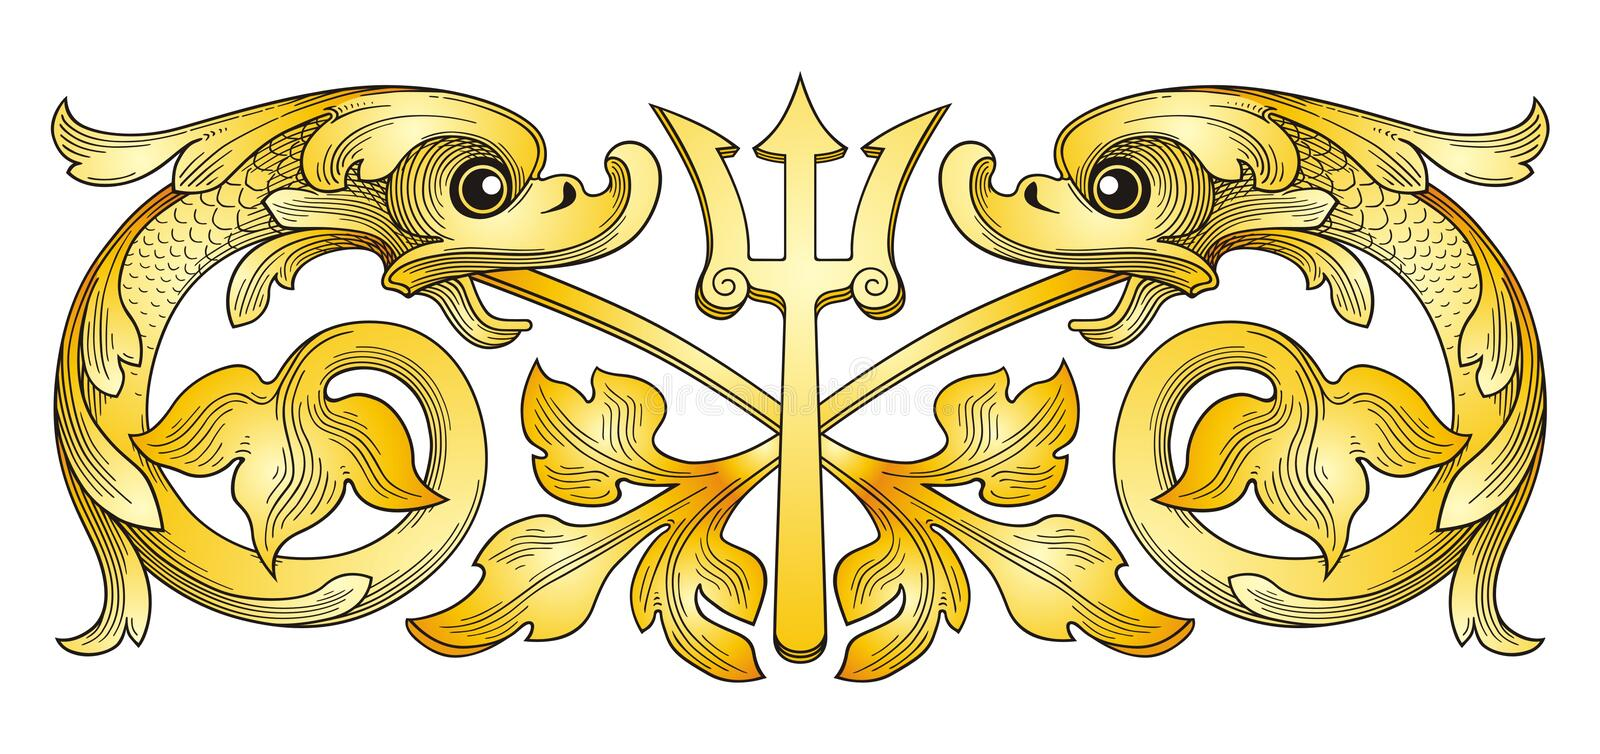 Fish Coat Of Arms Stock Images